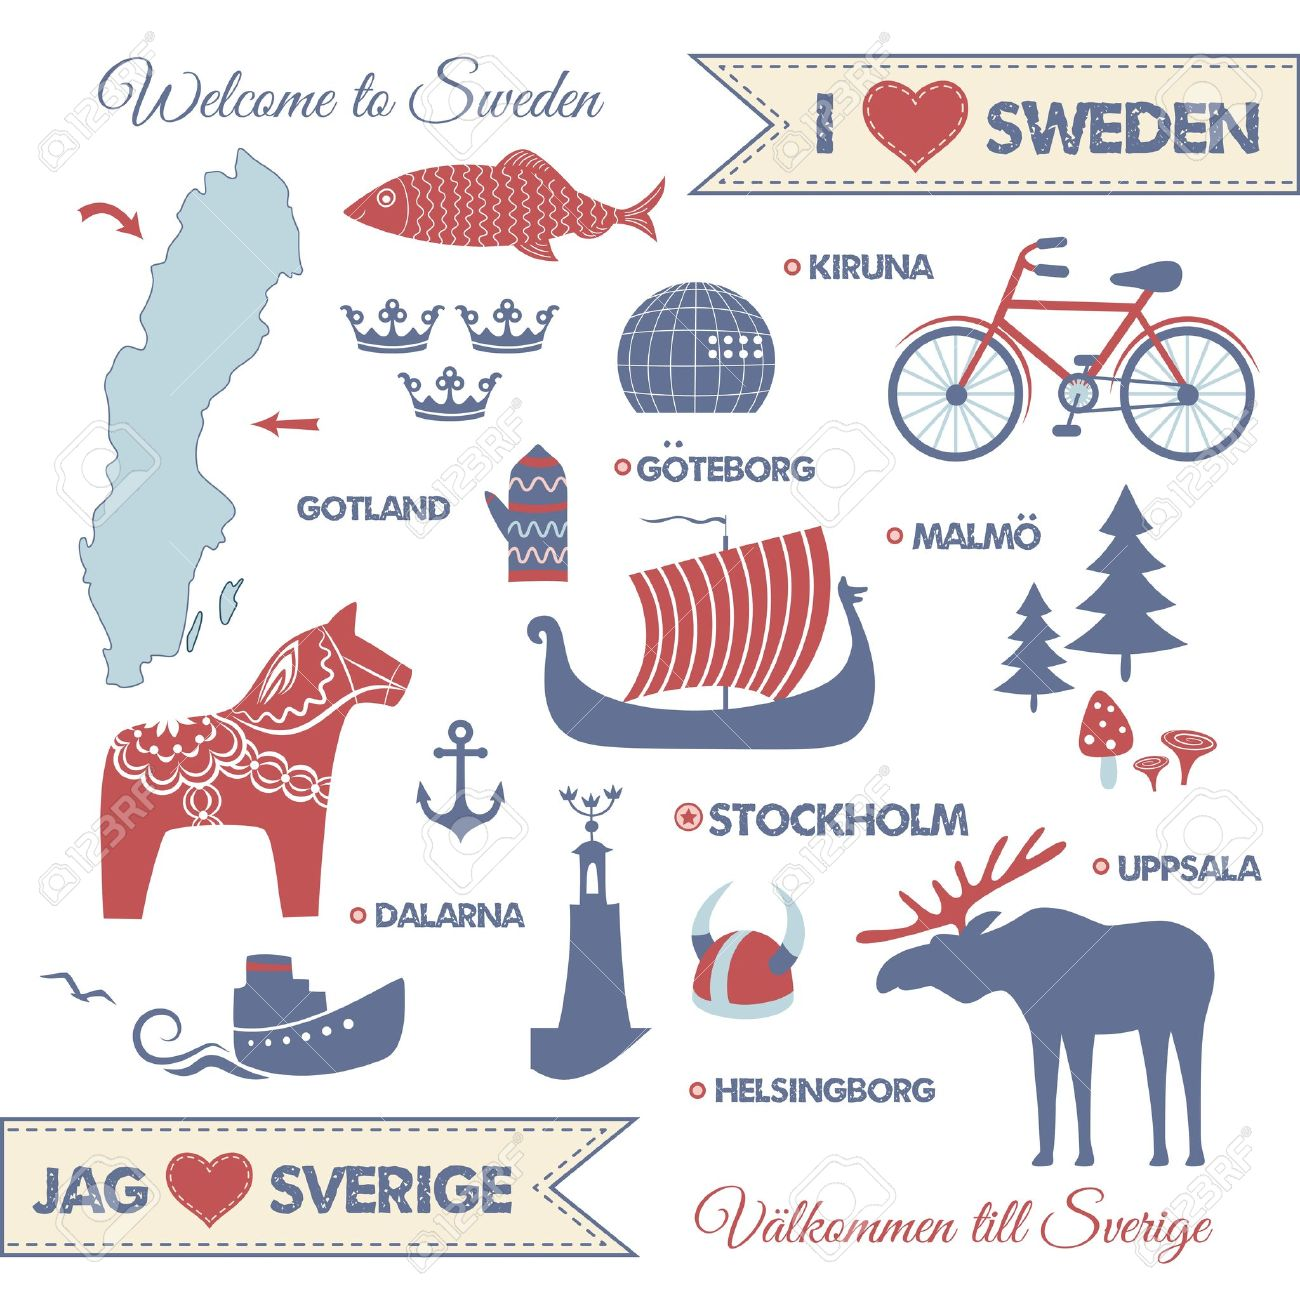 Sweden clipart #11, Download drawings